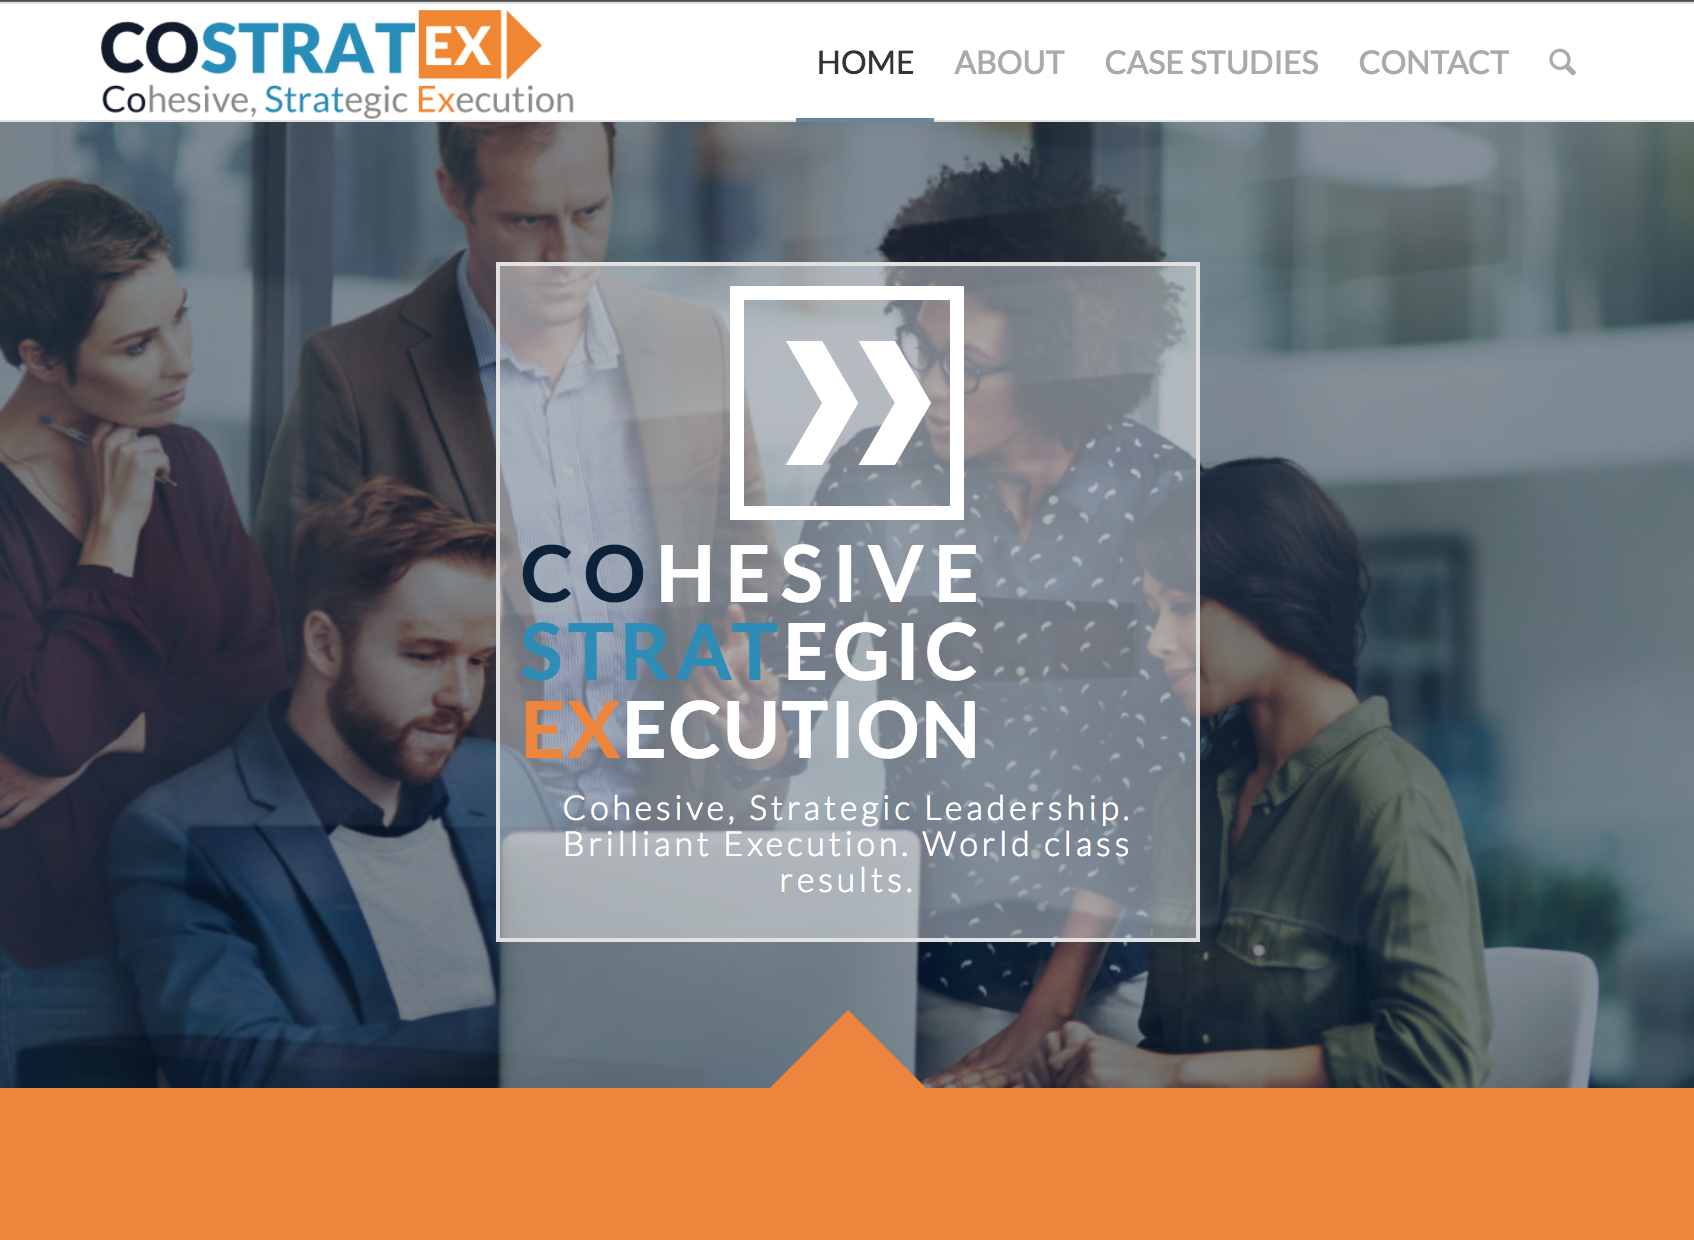 Costratex